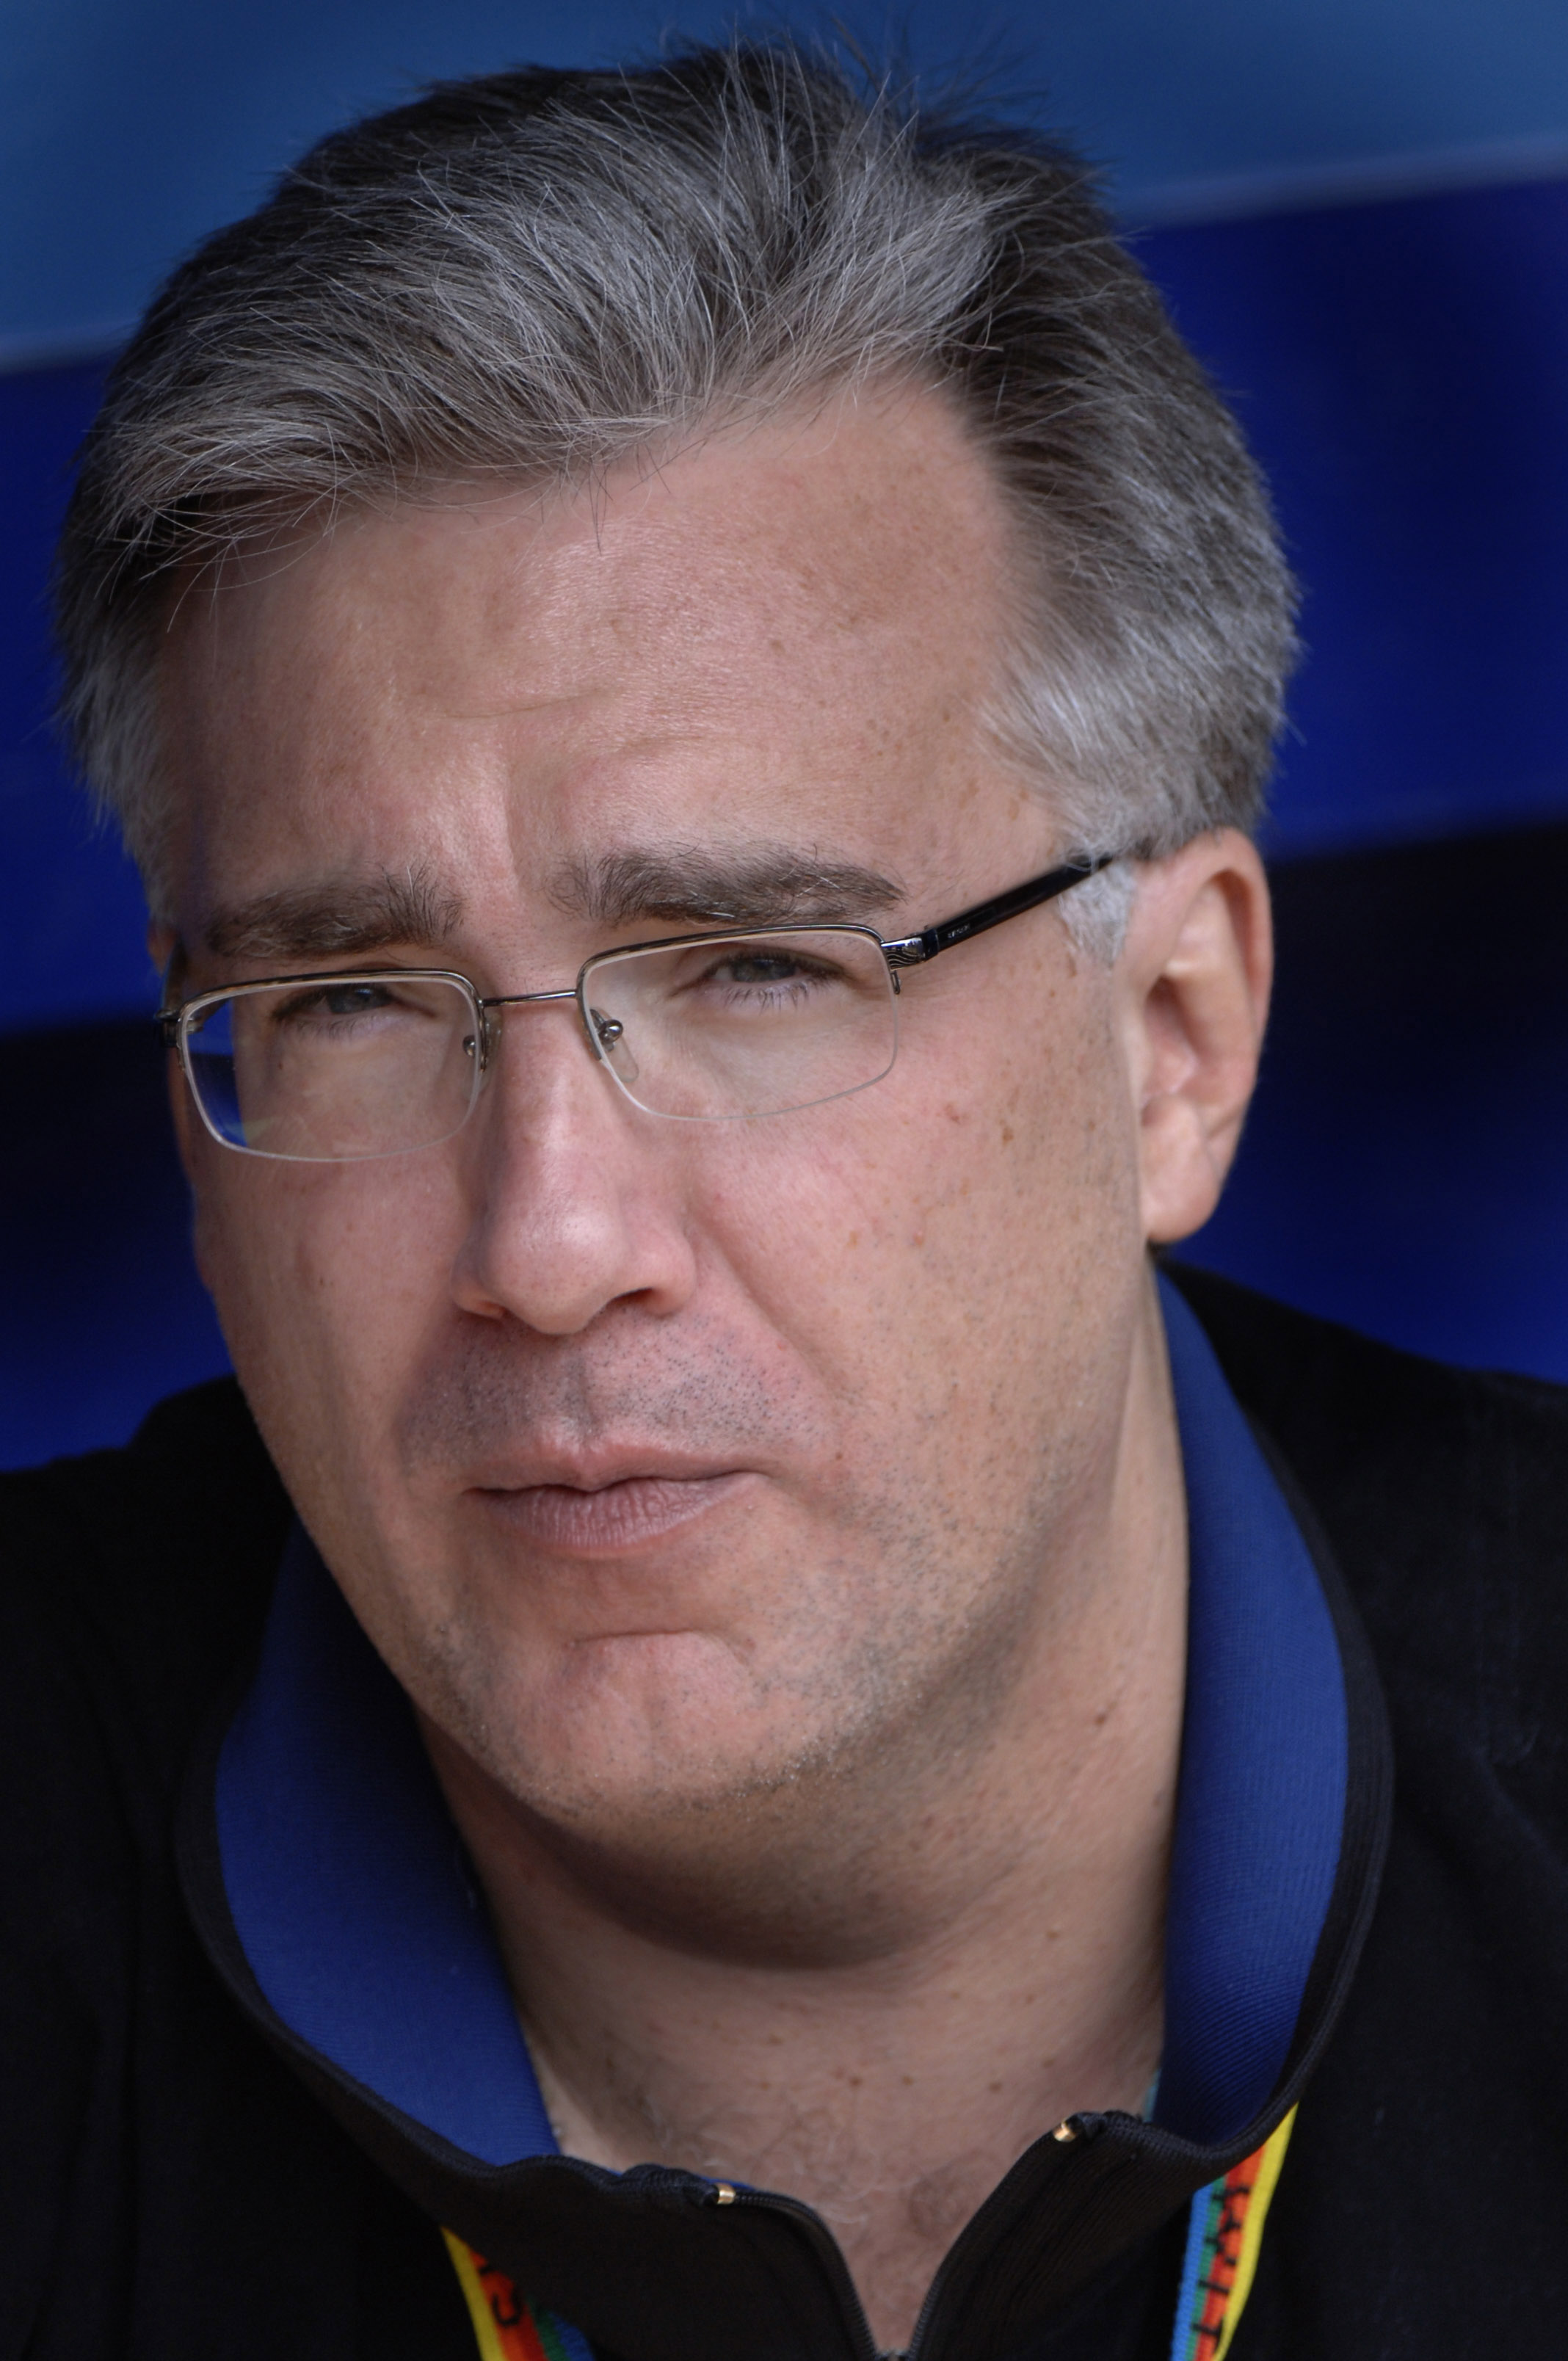 MSNBC commentator Keith Olbermann in the dugout before the Milwaukee Brewers play against the New York Mets, April 15, 2006 at Shea Stadium.   The Brewers defeated the Mets 8 - 2. (Photo by A. Messerschmidt/Getty Images)